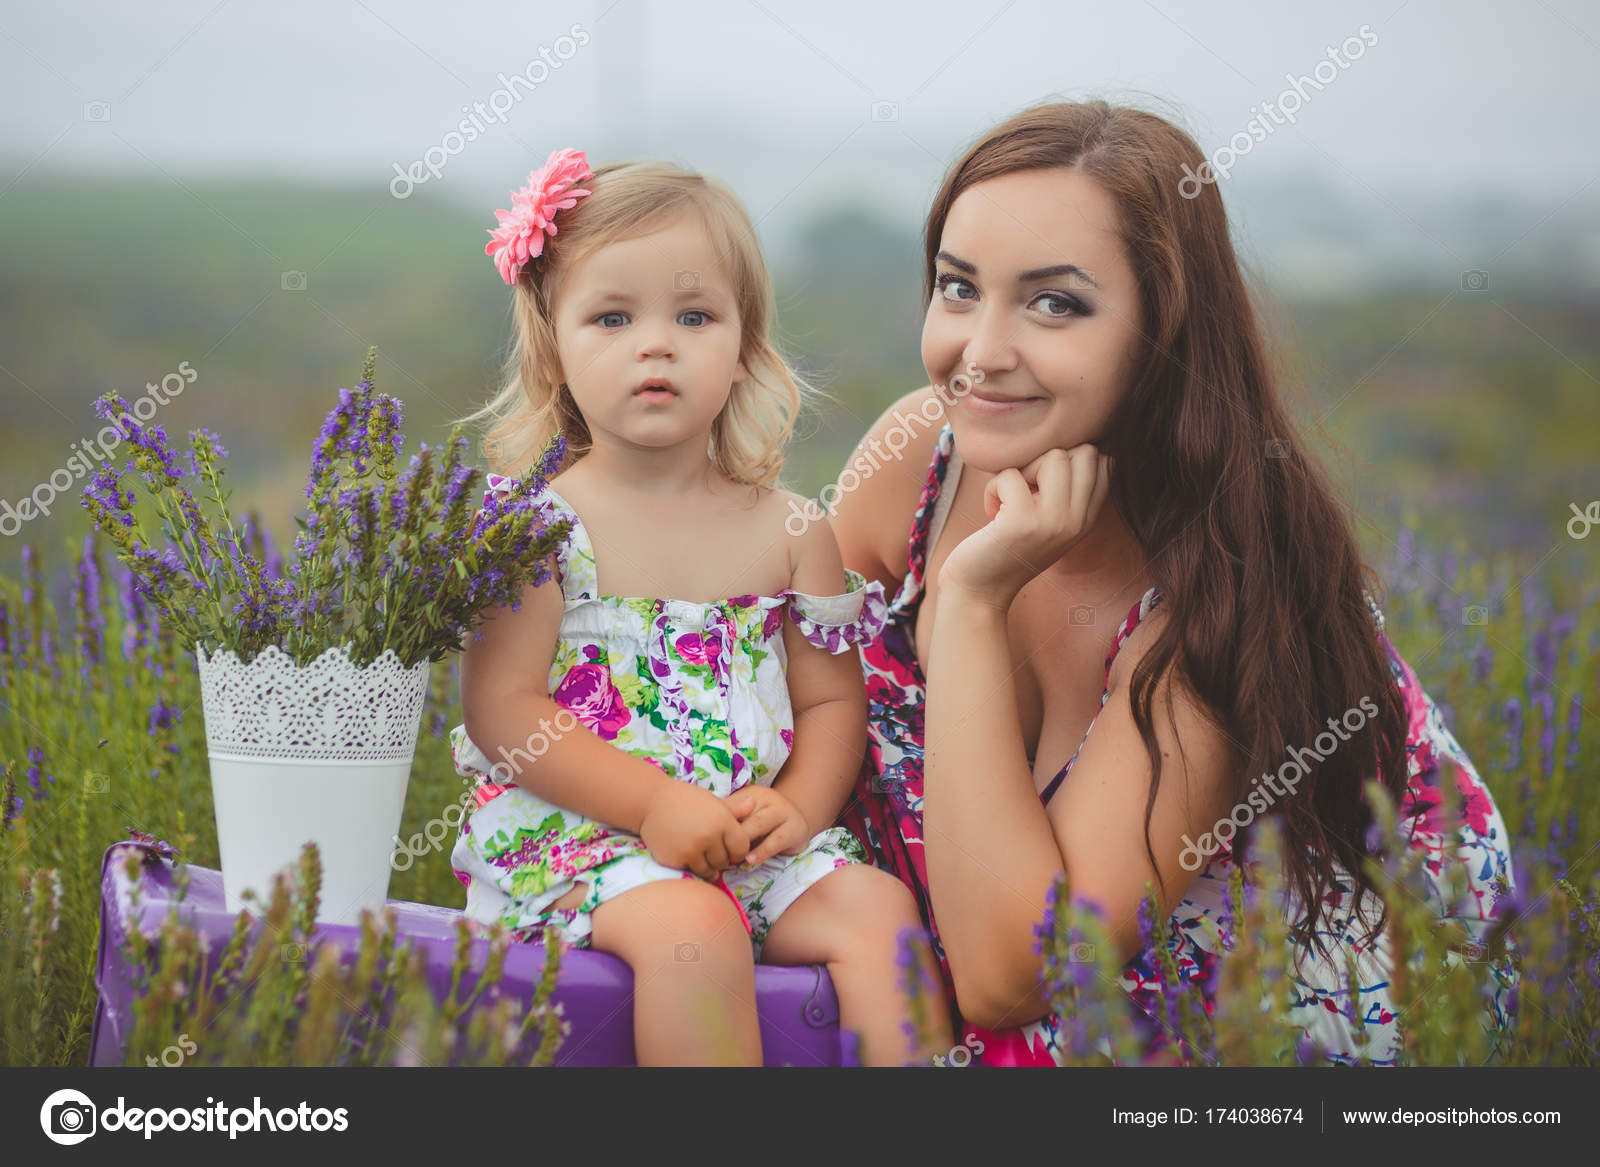 Happy Young Adorable Brunette Mother Mom Posing Kissing Her Tiny Little Daughter Child Girl In Lavender